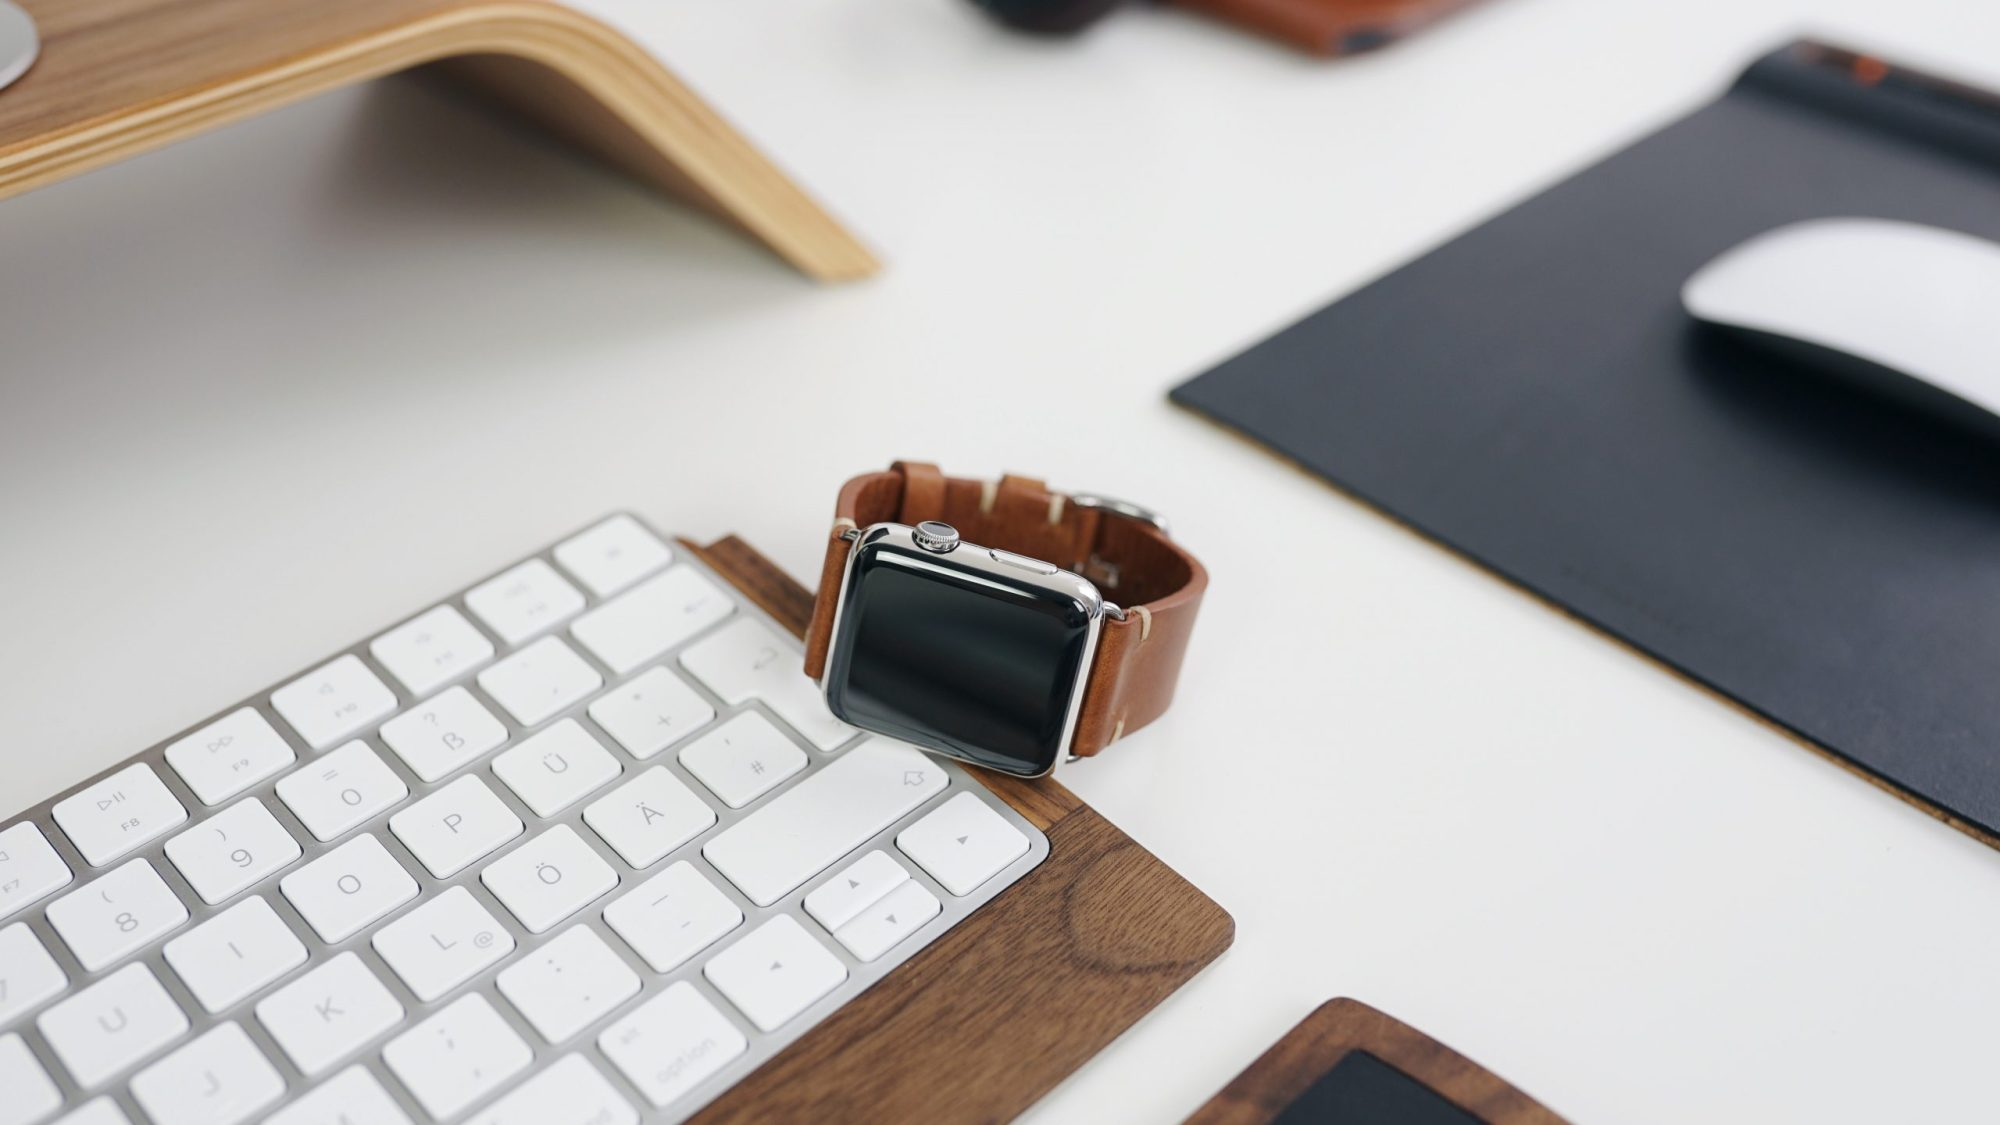 Apple Watch and keyboard